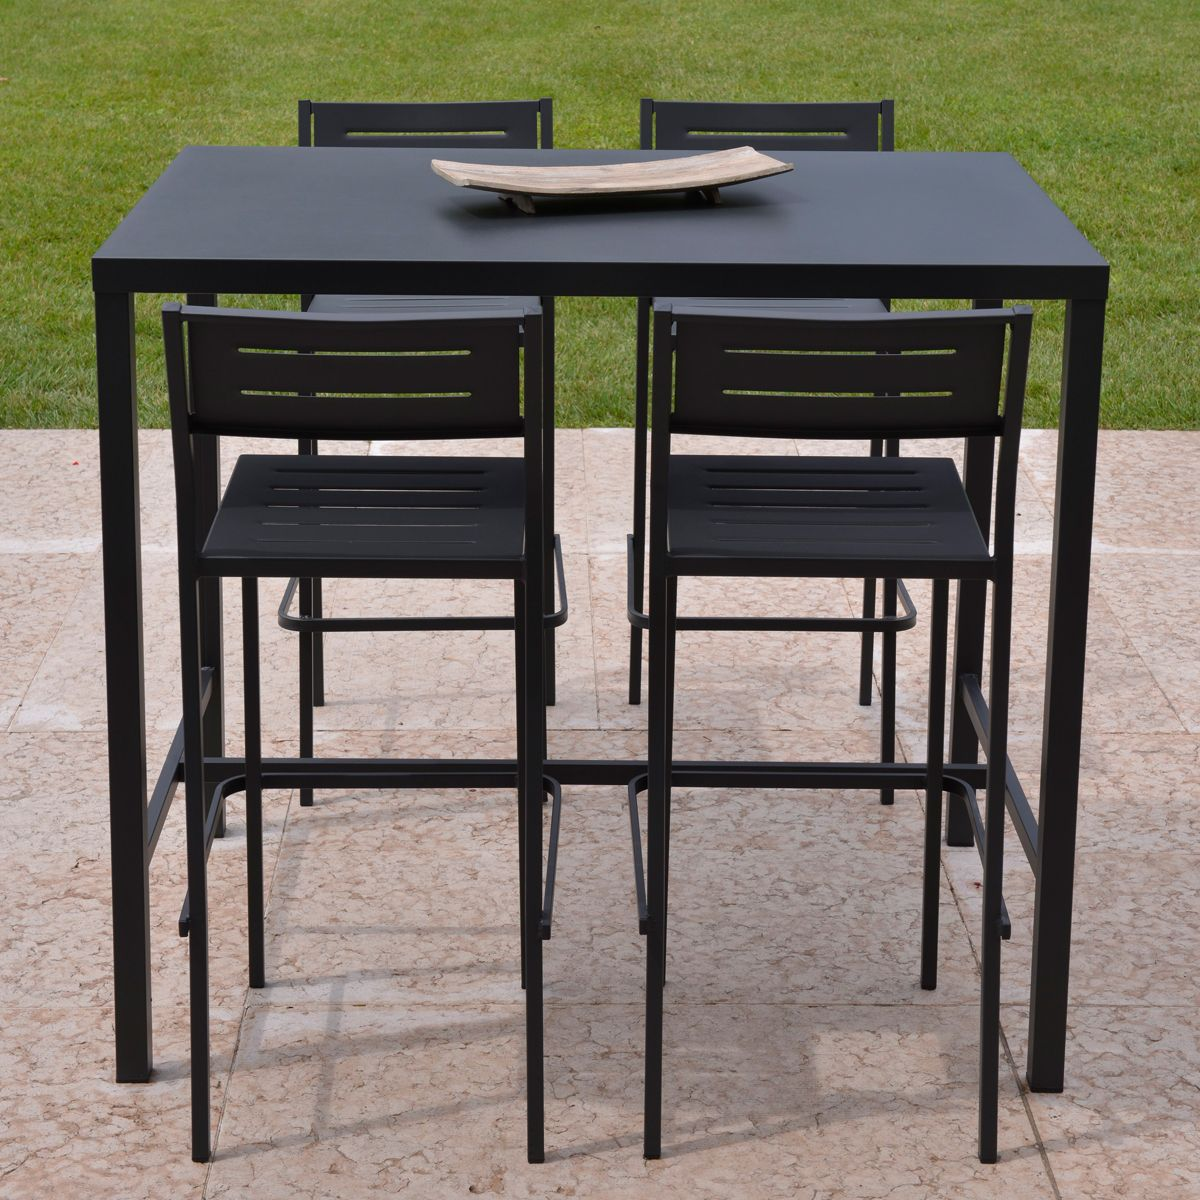 Ensemble de jardin table haute tabouret dorio rd italia Table haute jardin design